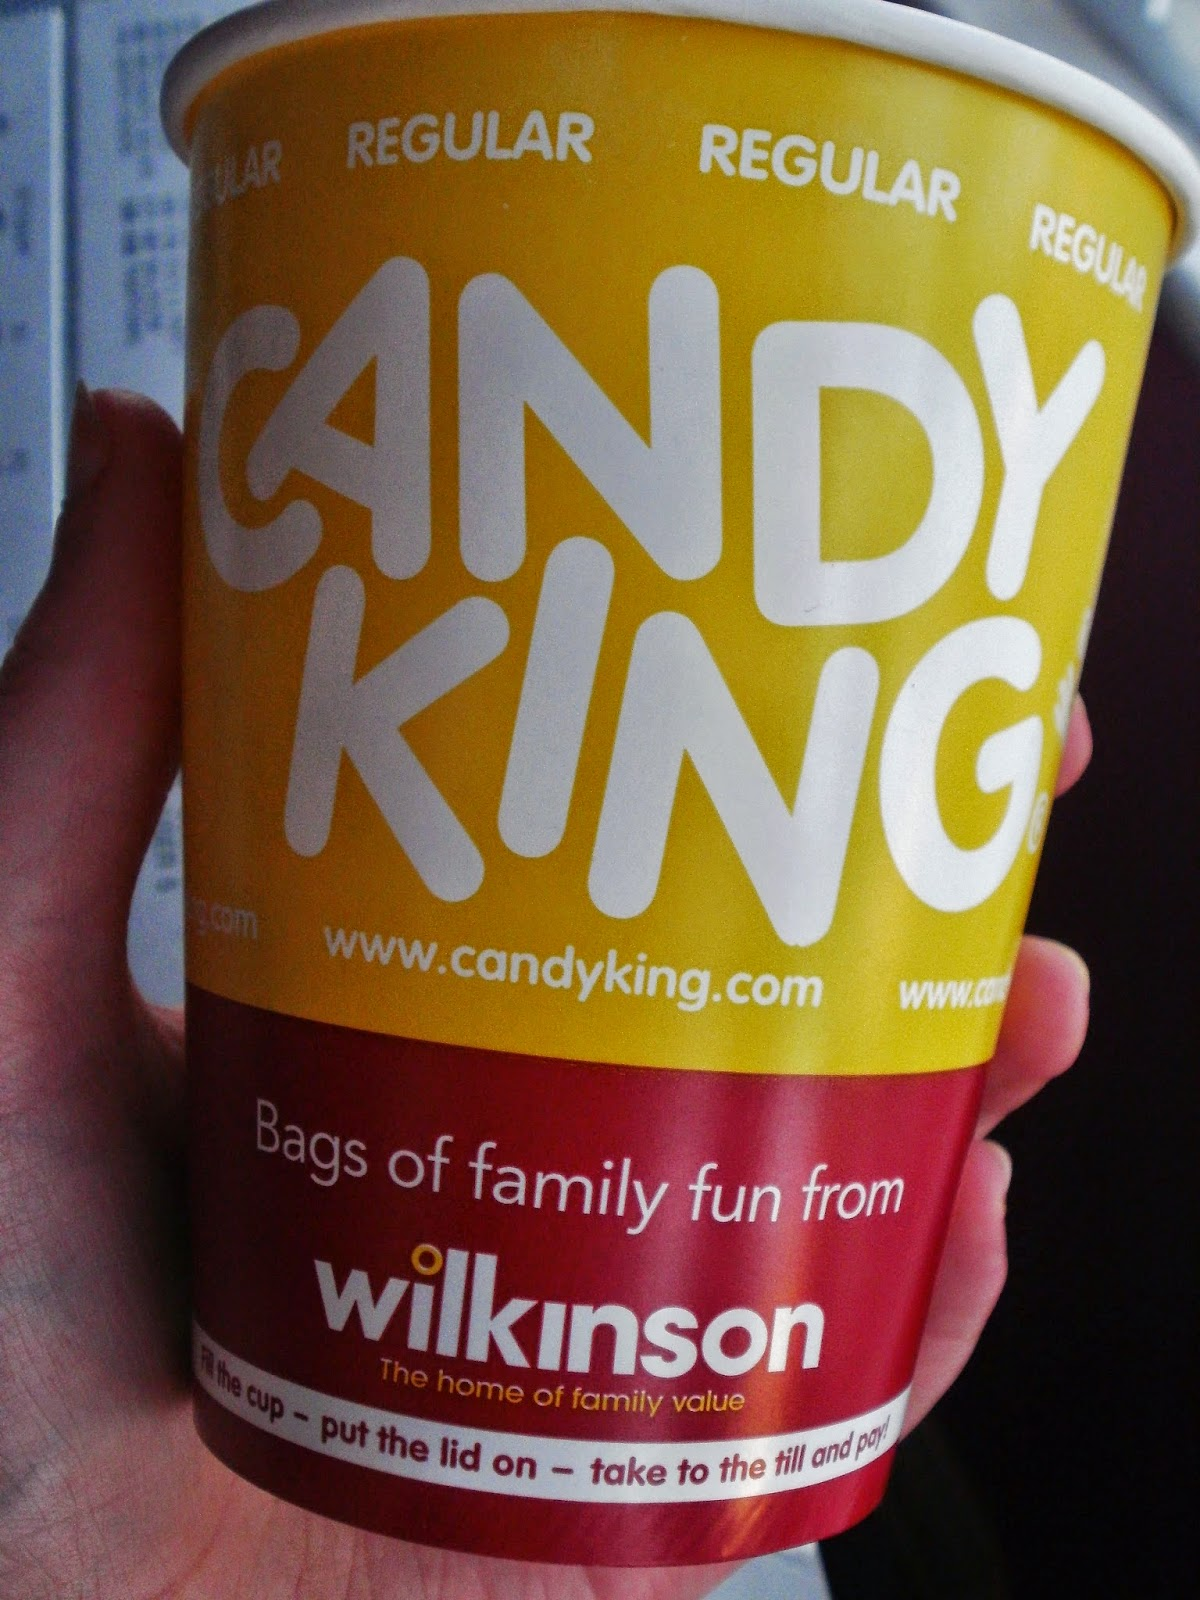 candy king sweets, pick n mix